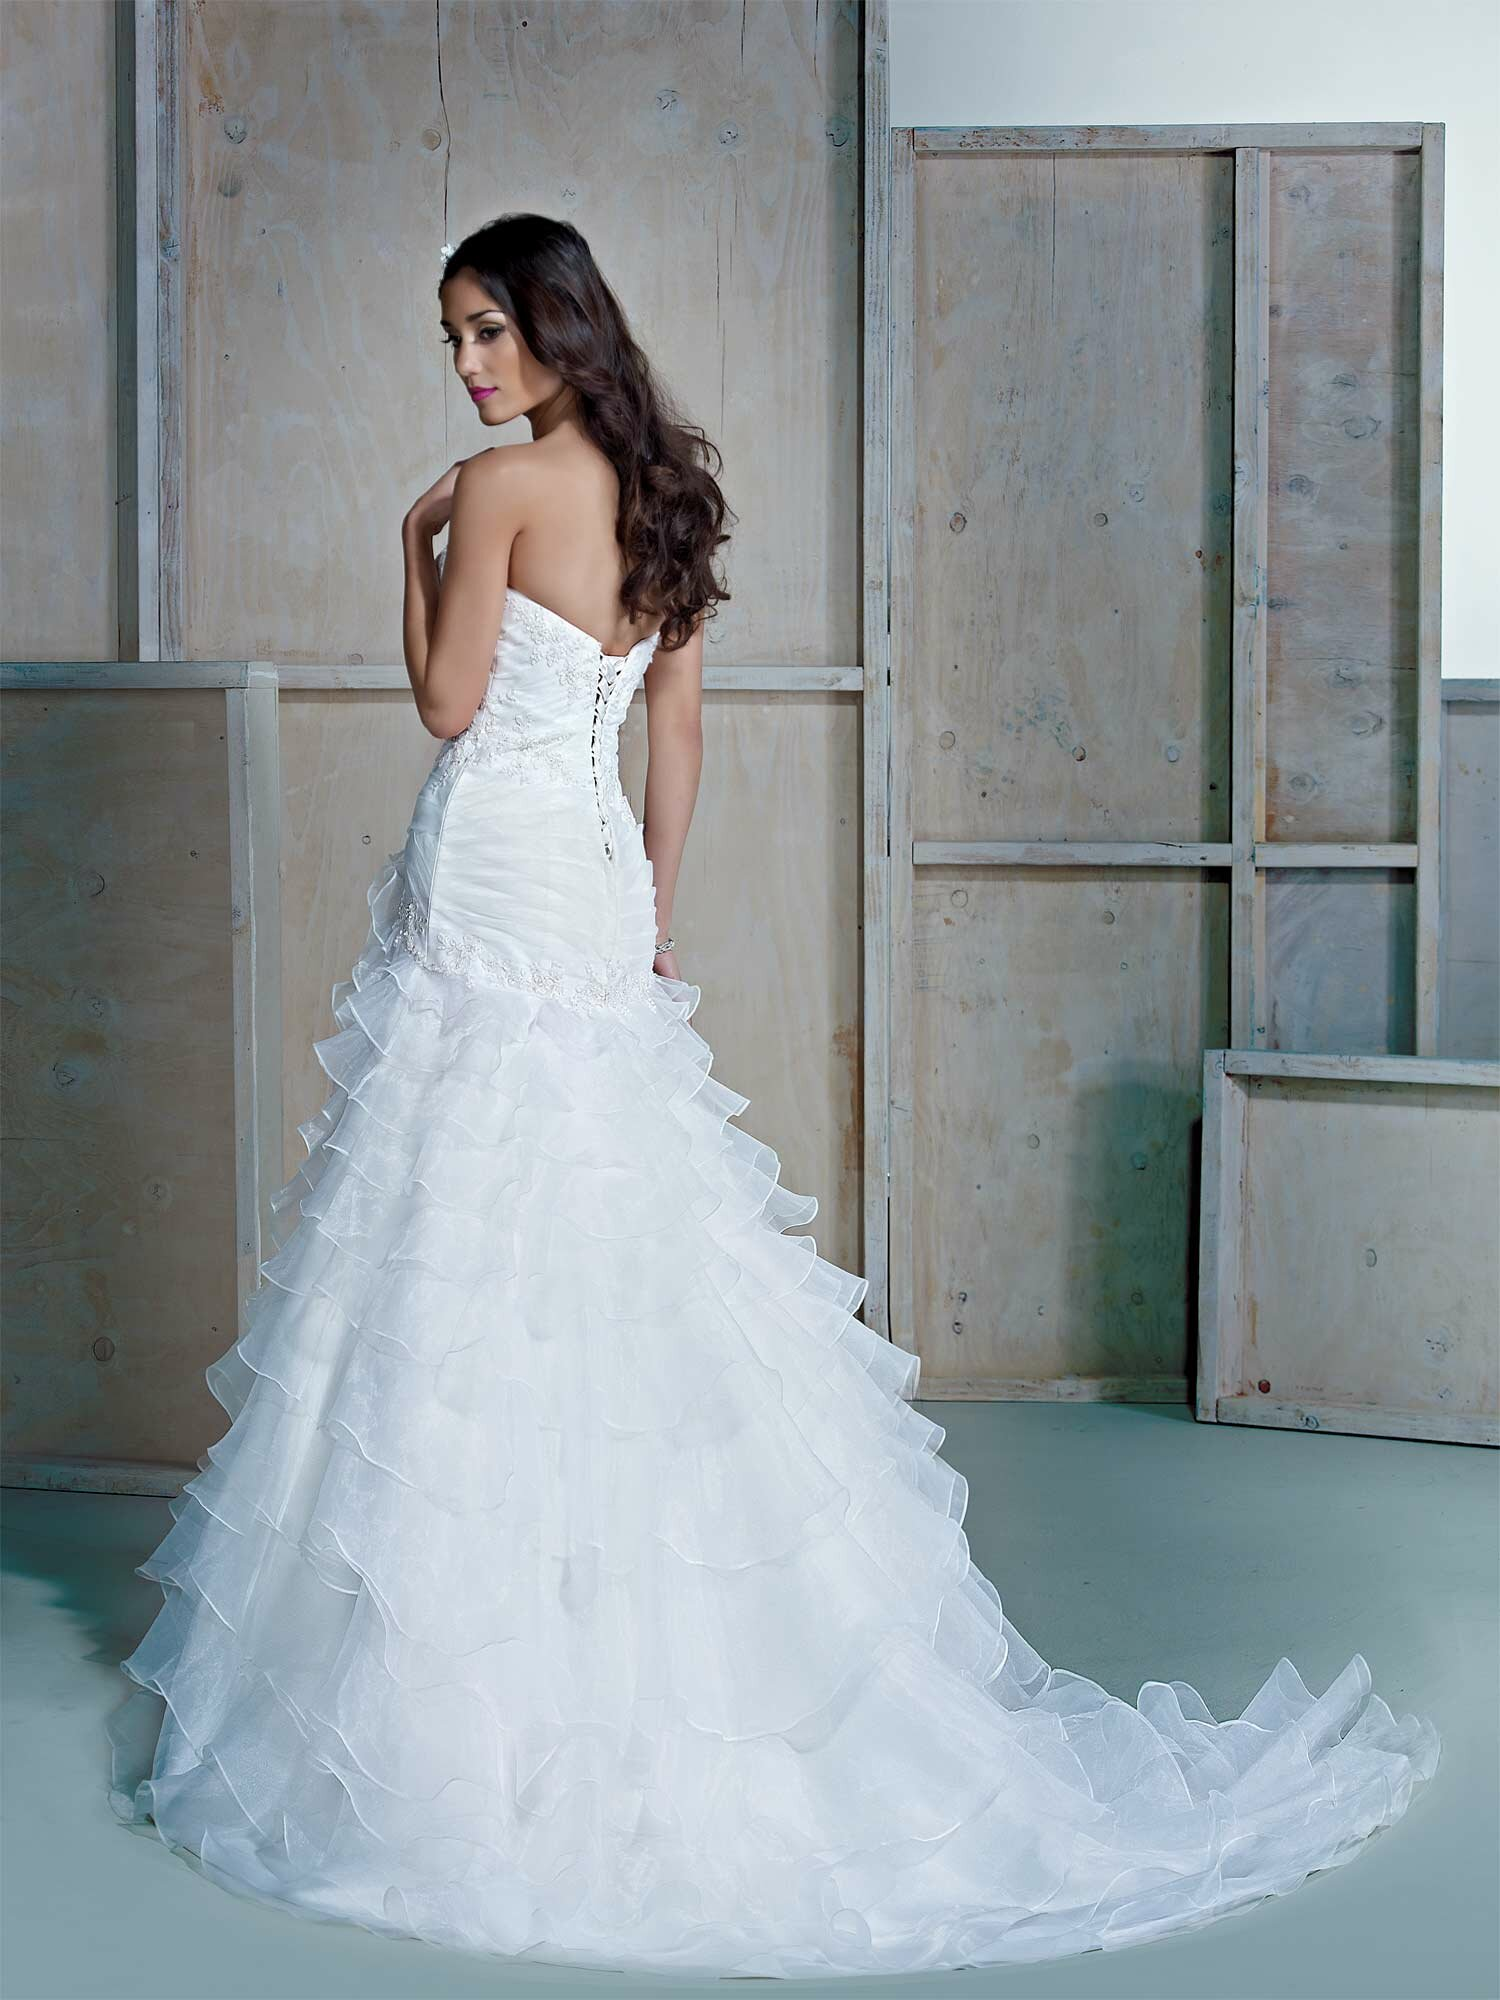 Santa rosa wedding dresses discount wedding dresses for Wedding dresses in santa rosa ca